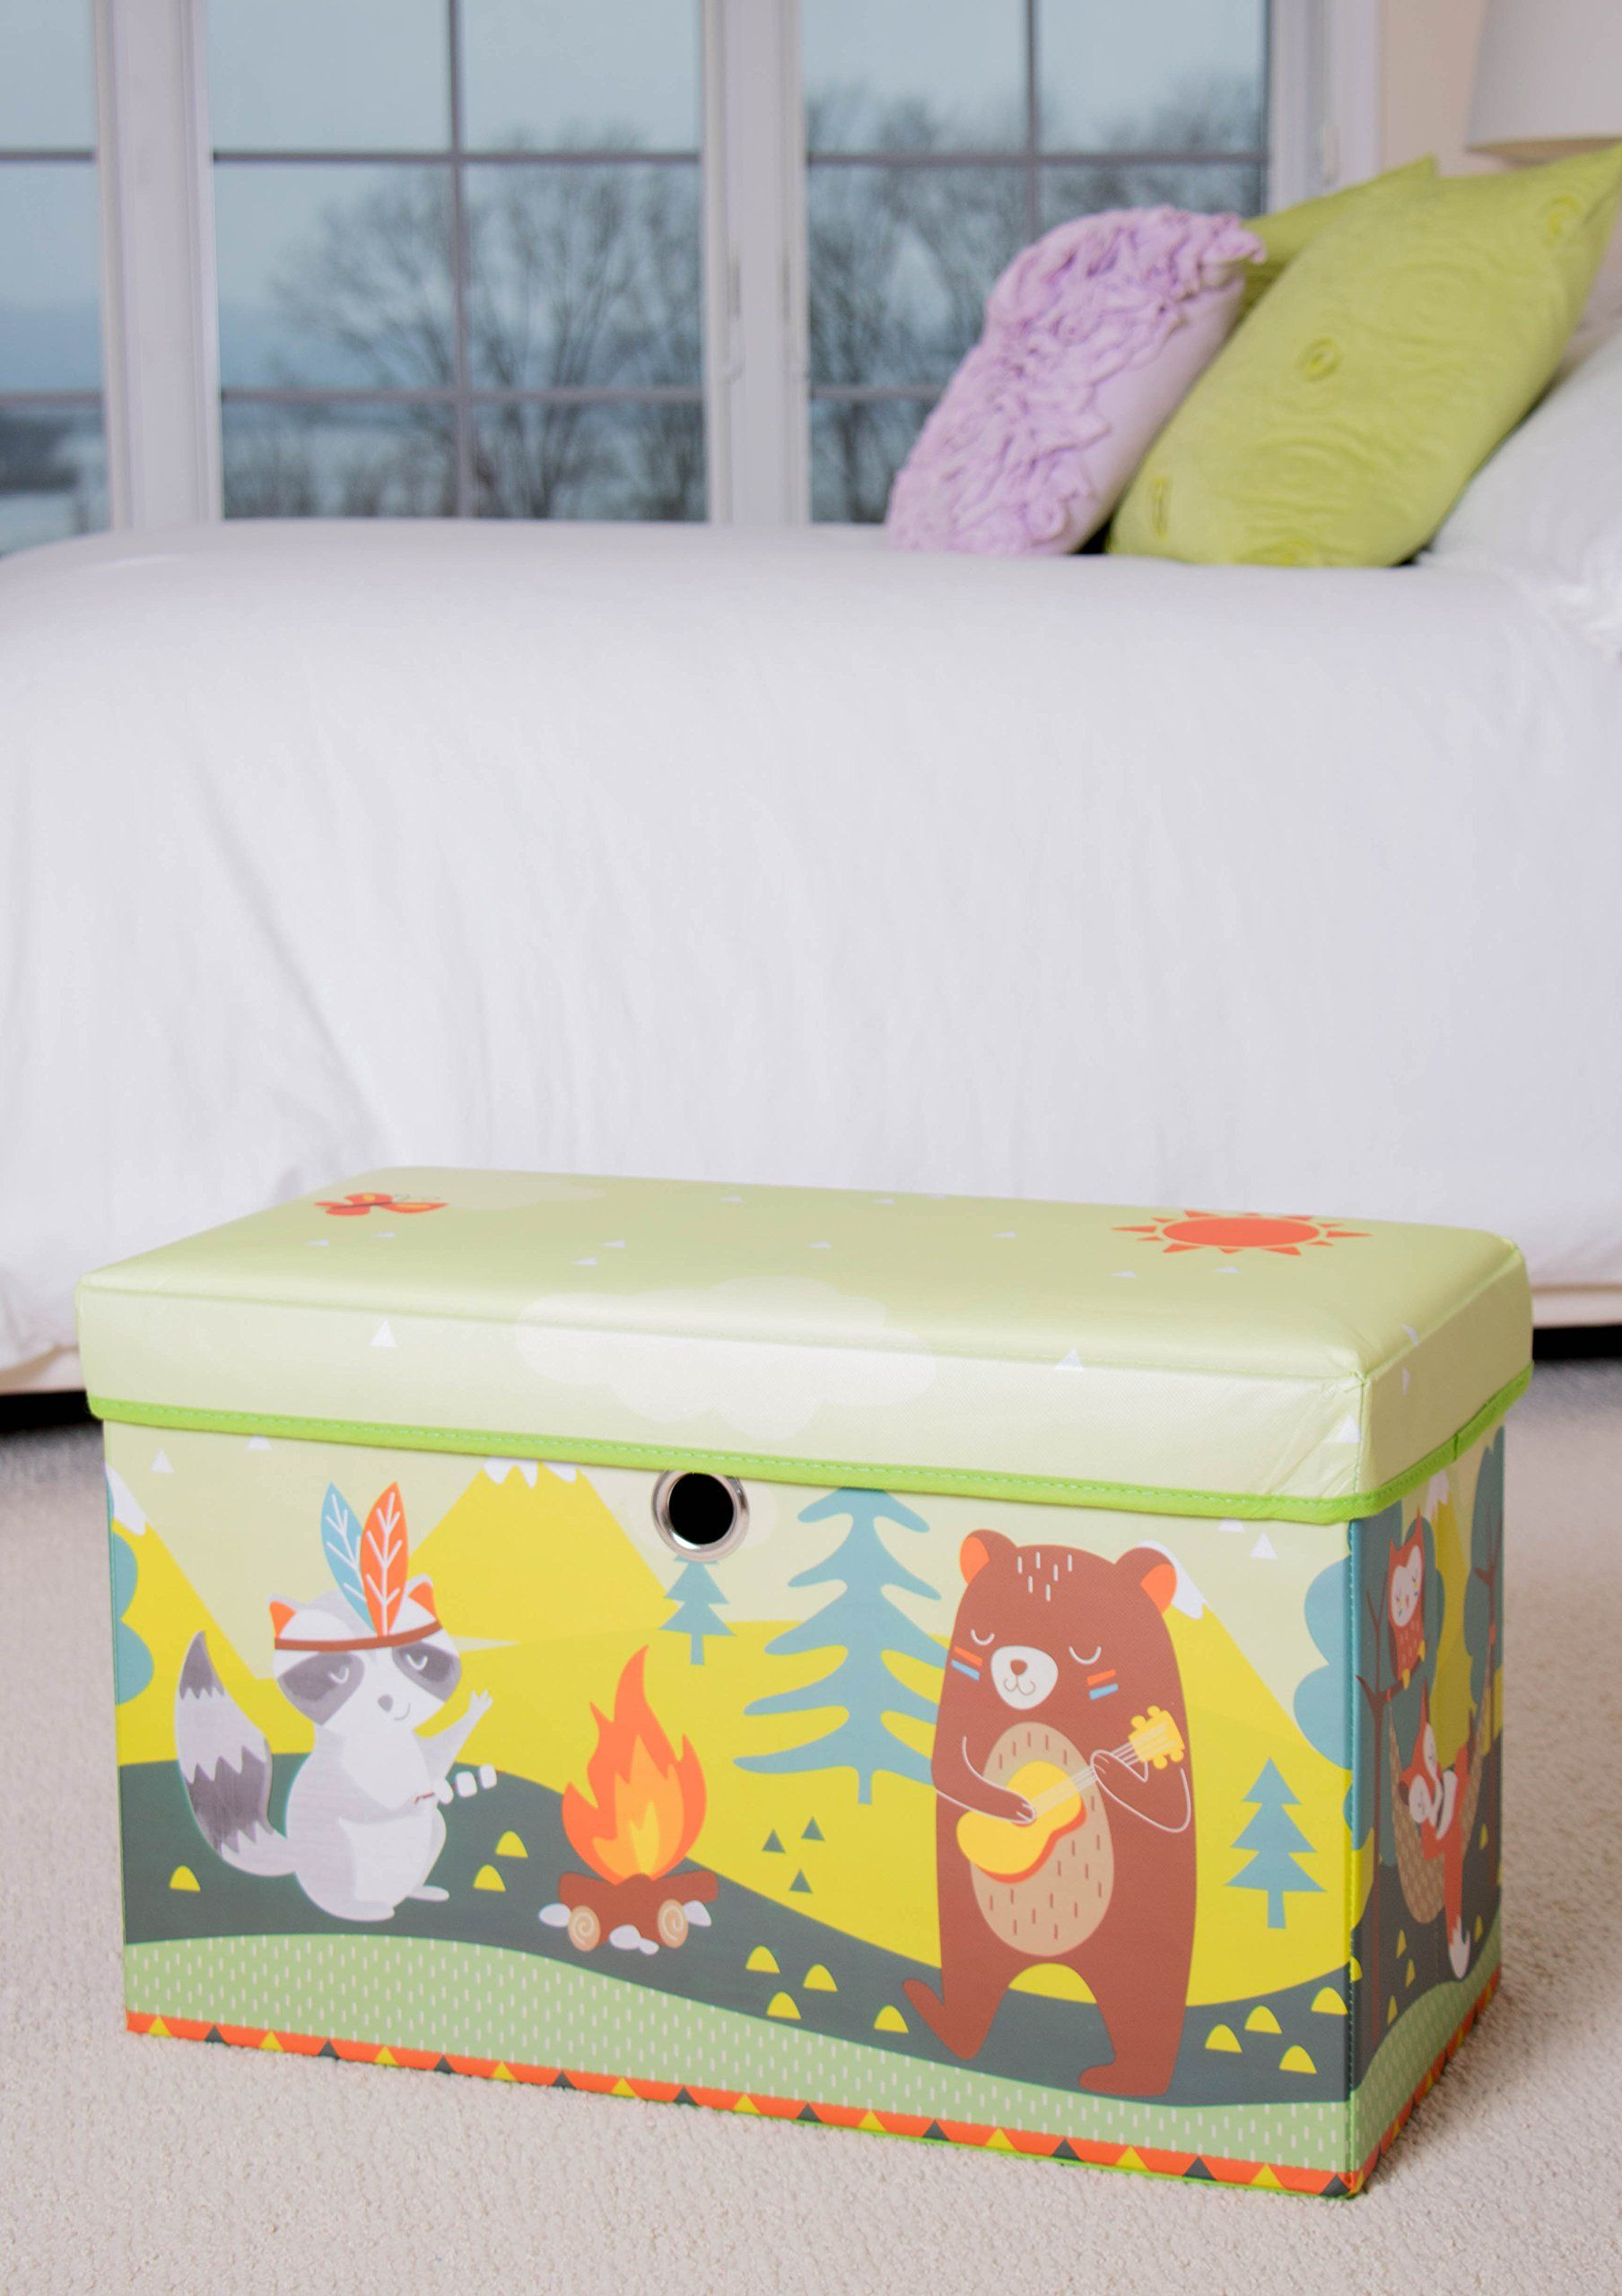 Cute Animal Camping Collapsible Storage Organizer By Clever Creations Storage Ottoman For Bedroom And Living Game Room Furniture Storage Ottoman Book Clothes